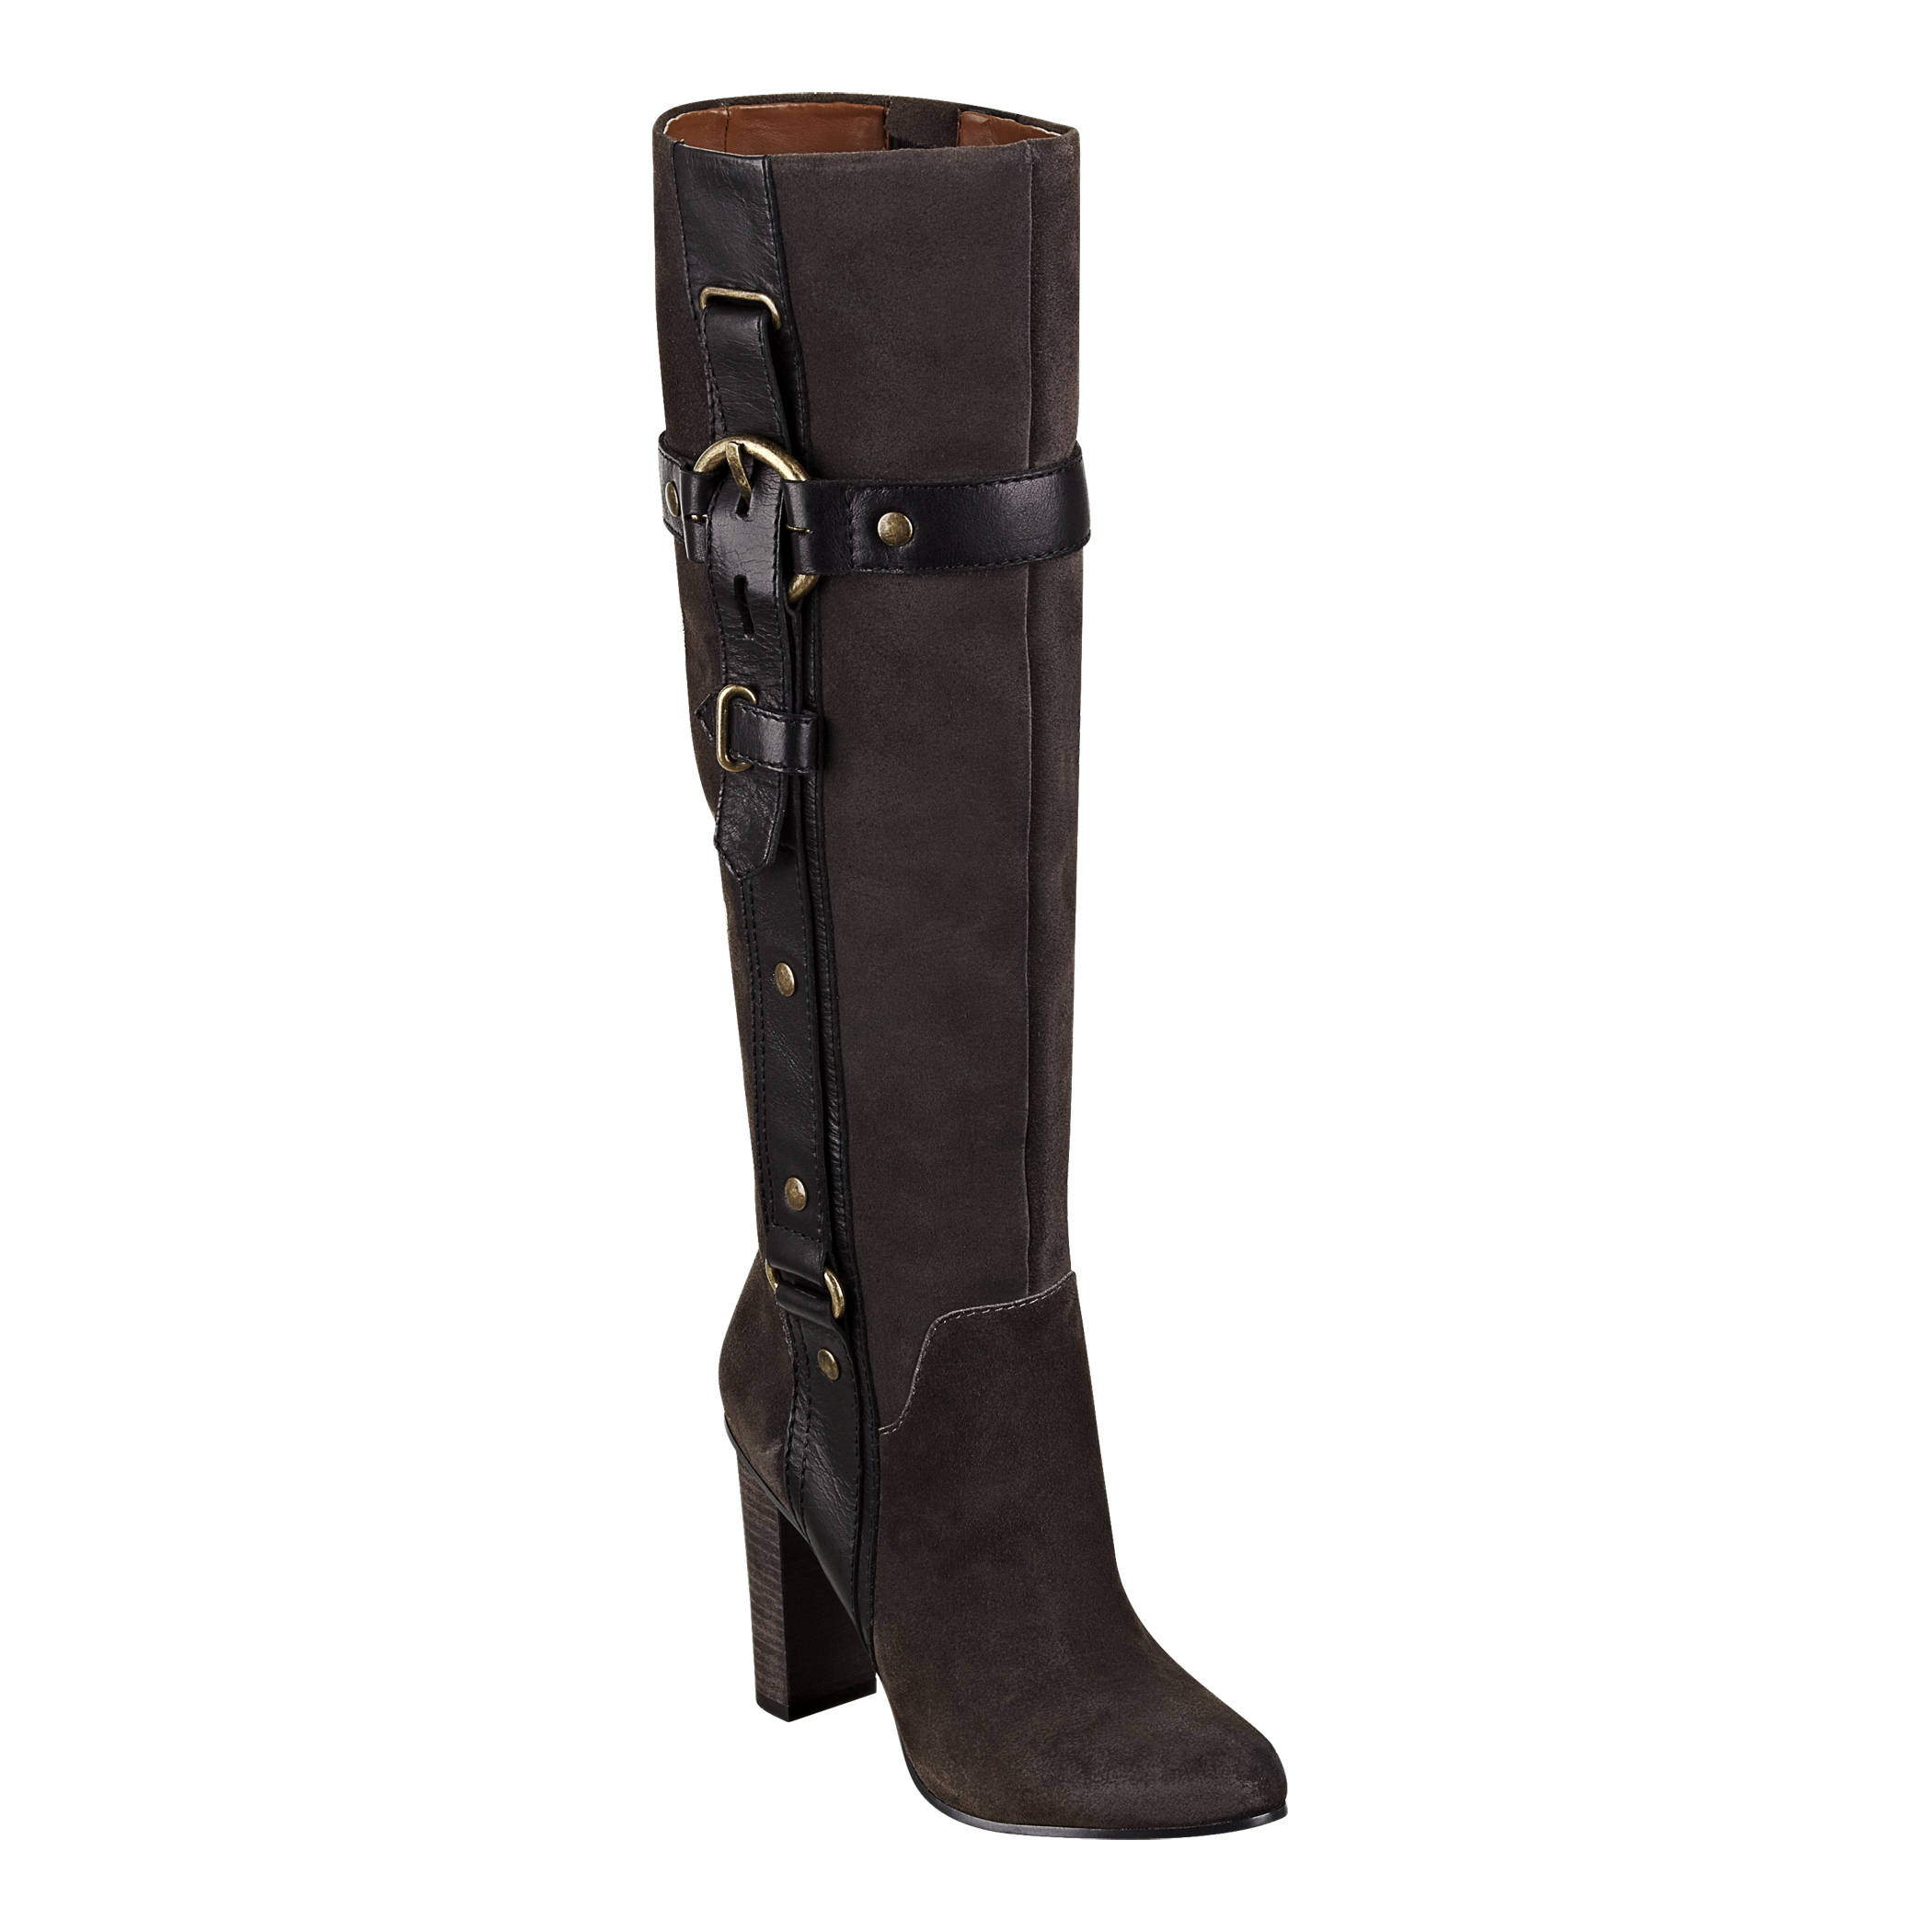 Nine West: Shoes > All Boots > OLLY RIDING BOOTS  - RIDING BOOTS